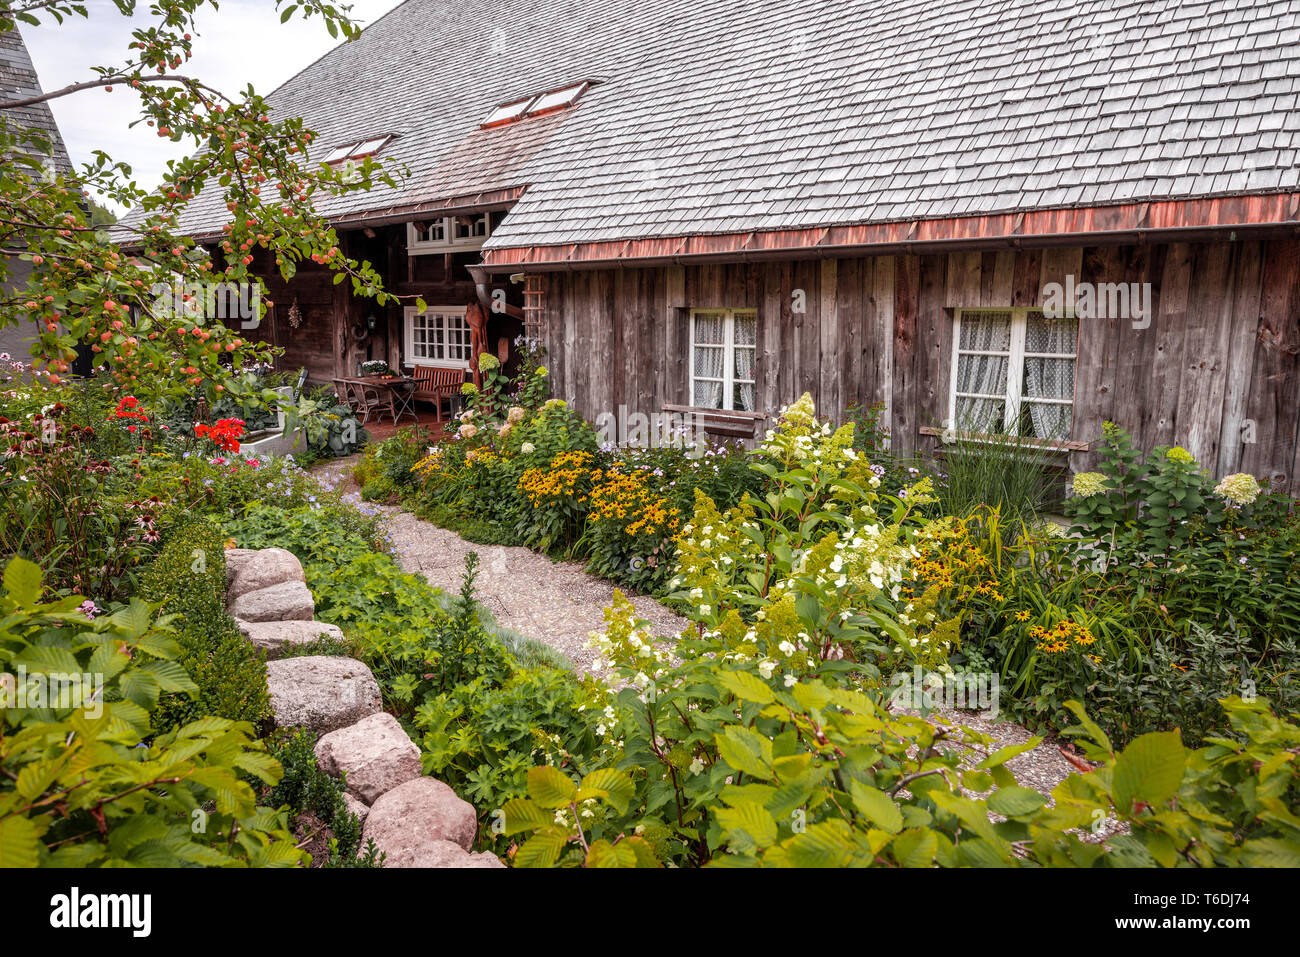 Cottage Garden With Fruit Tree In Front Of A Black Forest House Village Menzenschwand Germany Woodhouse With Shingle Covered Hip Roof Stock Photo Alamy